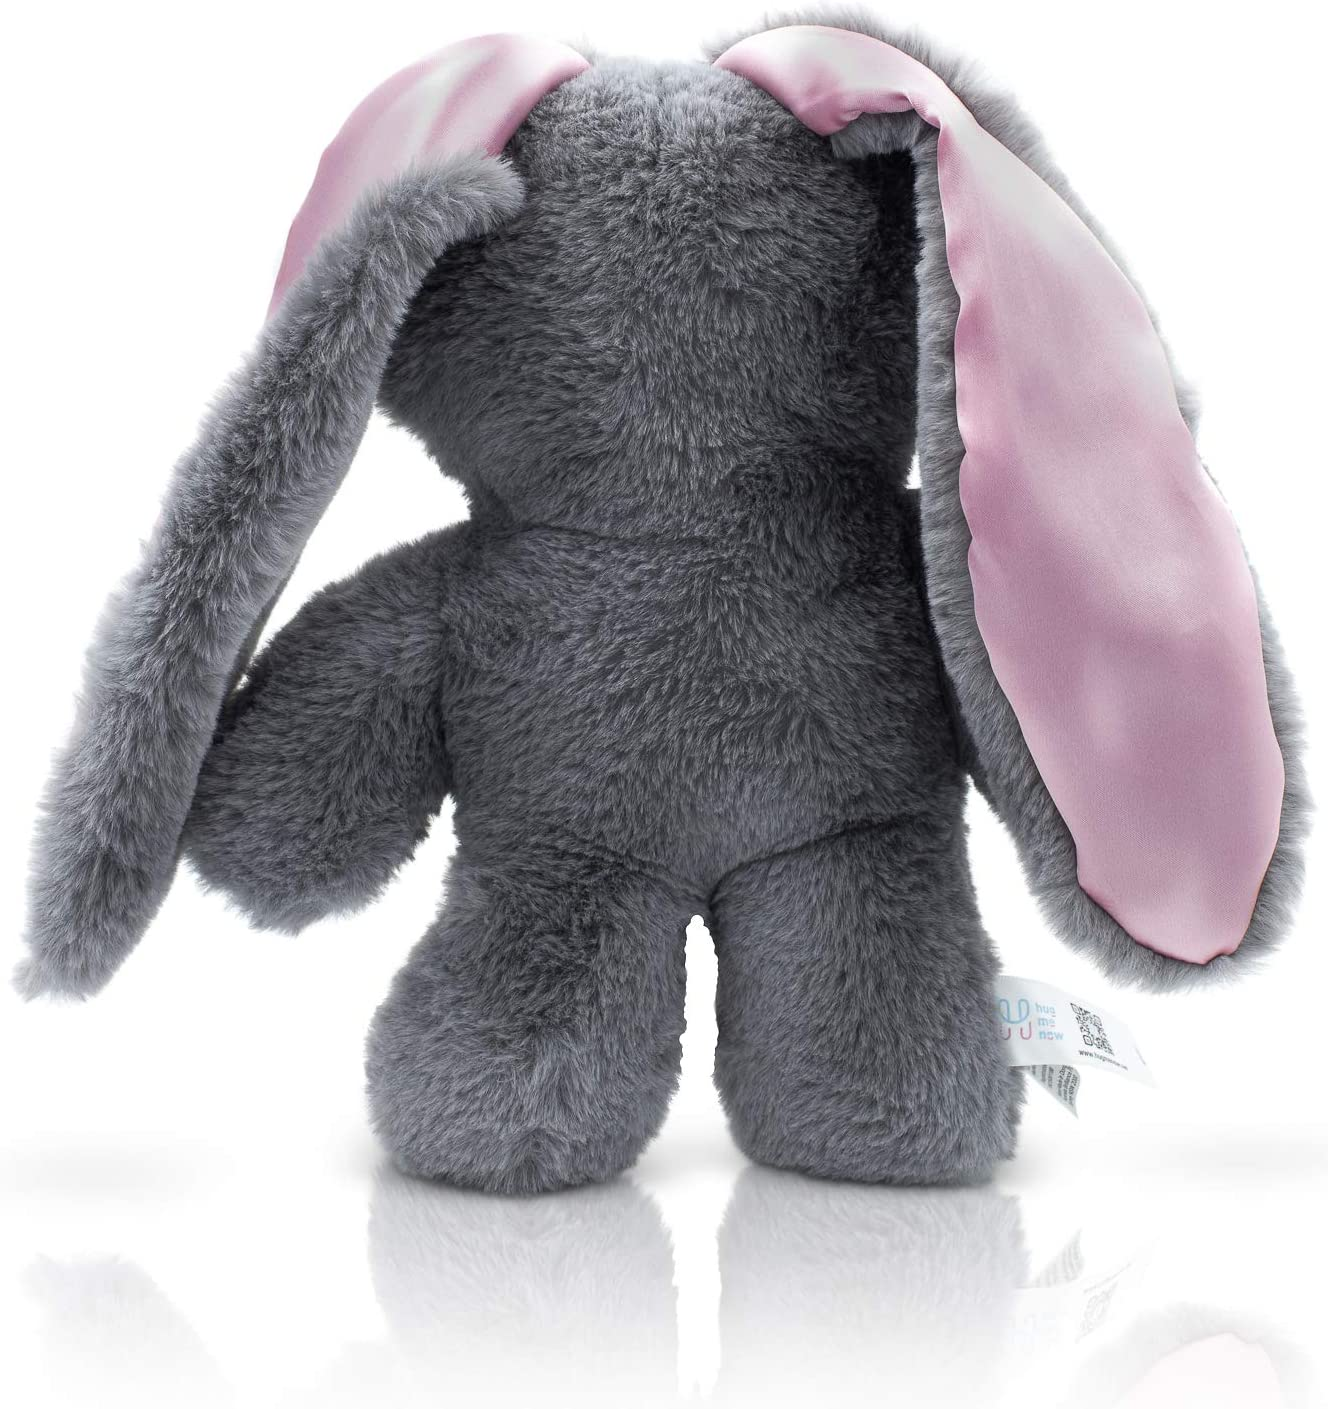 HugMeNow Plush Bunny Stuffed Animal for Therapeutic Calming, Cute Lop-Eared Bunnies for Snuggling, Sleep, Toy for Girls and Boys, 12 inches, Grey Plush(Pink)